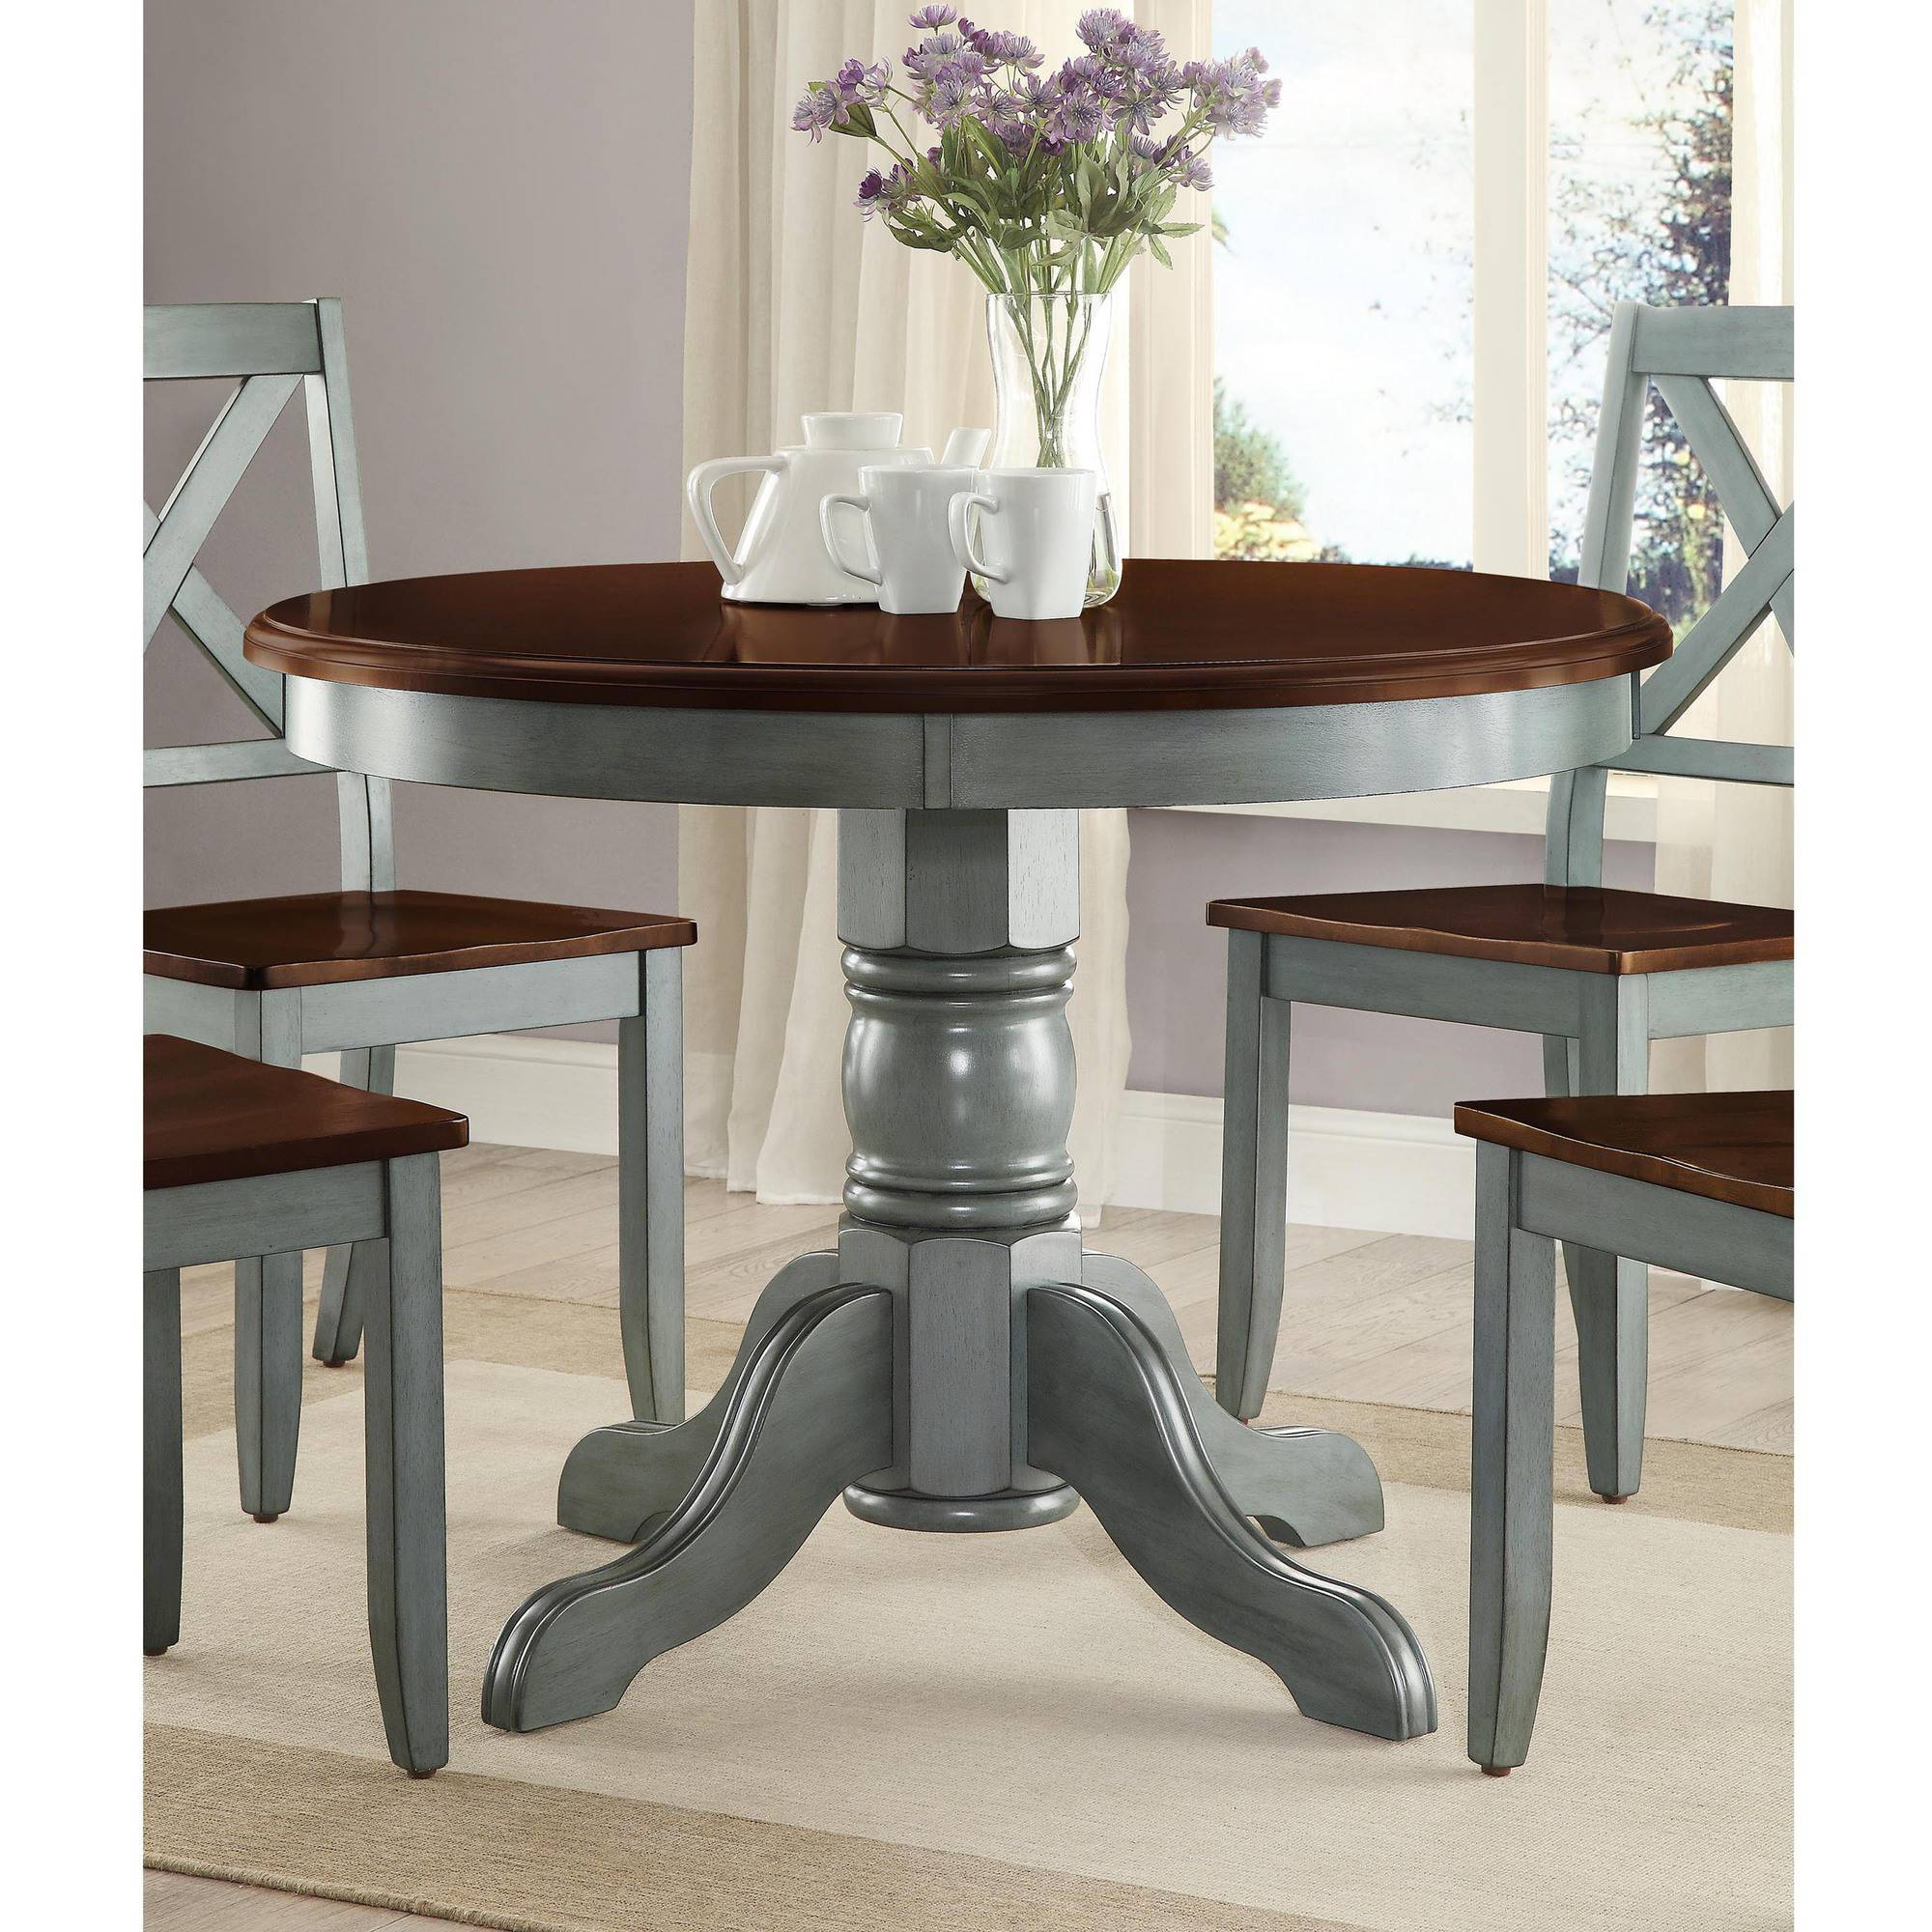 Better homes and gardens kitchen - Better Homes And Gardens Cambridge Place Dining Table Blue Walmart Com